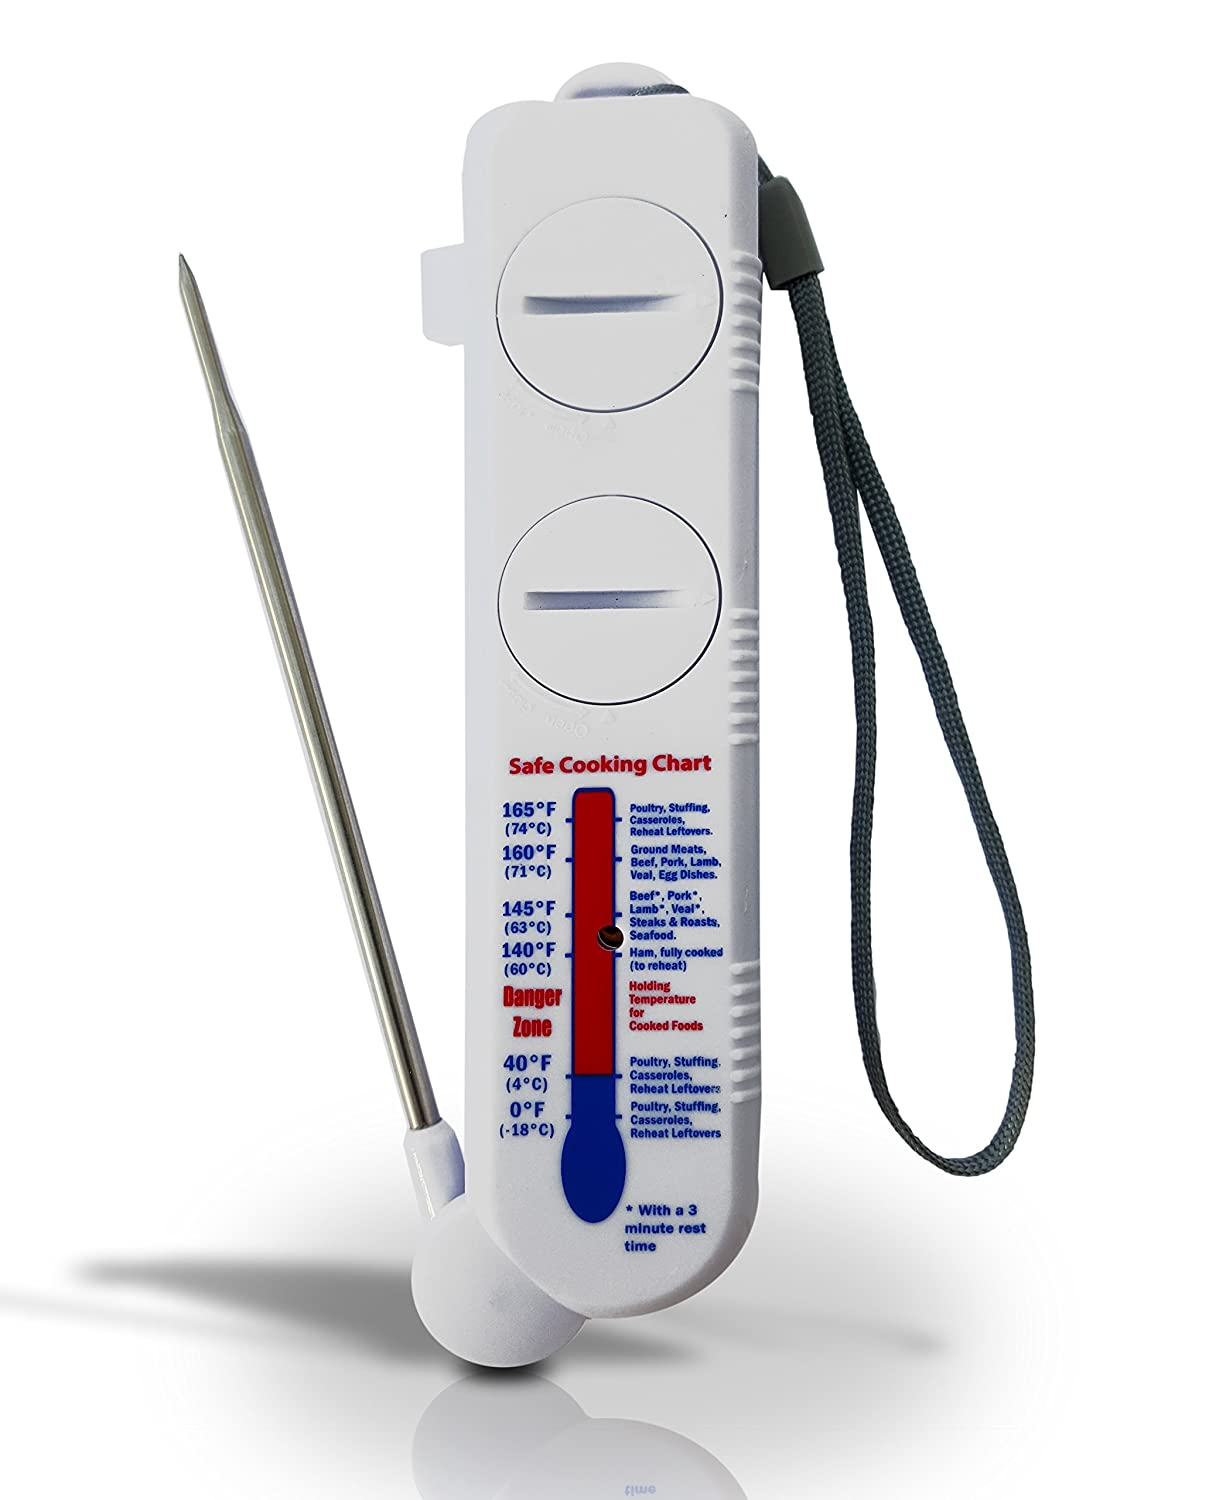 Digital Meat Thermometer Probe – ATUMN OFFER-High grade stainless steel, Fold Out Probe. Instant read for cooking checks in C° or F° Built in alarm. Batteries are included. CMM Online Sales